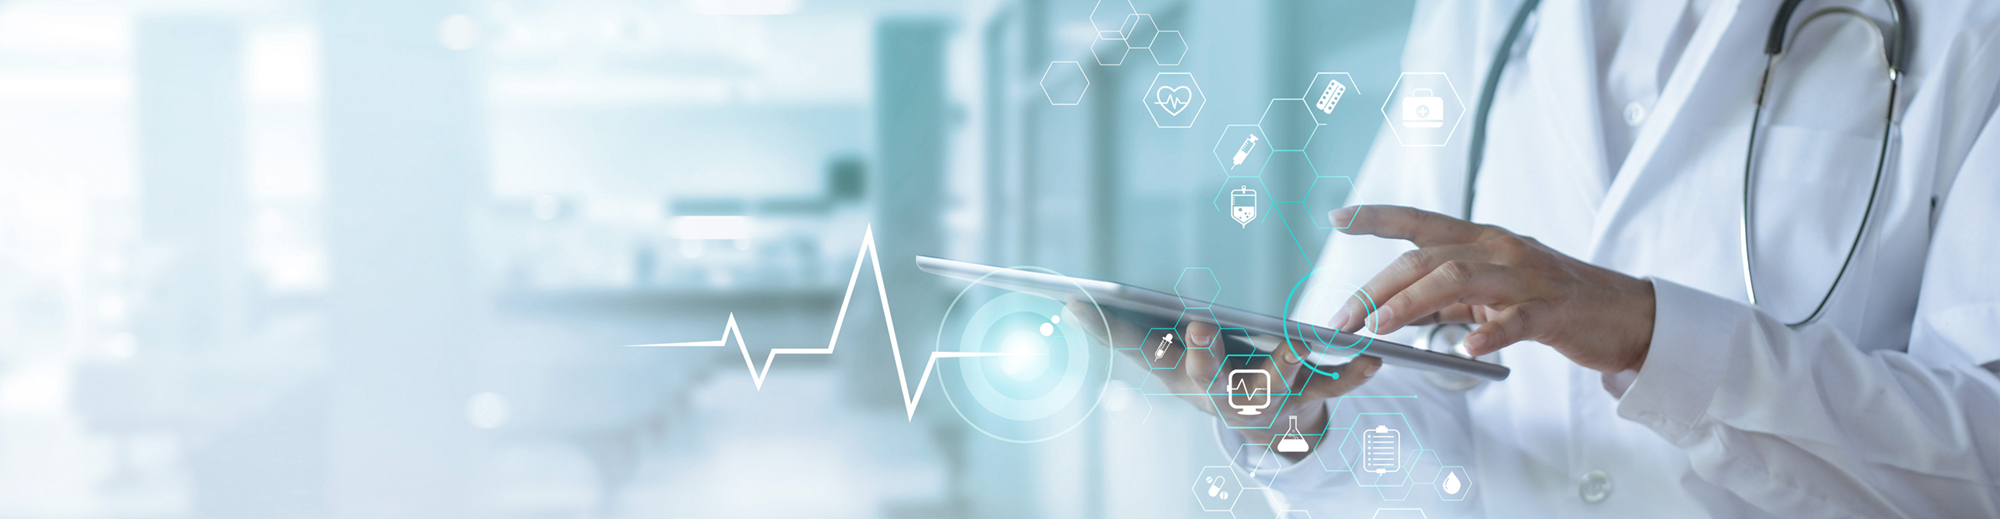 chatbot healthcare